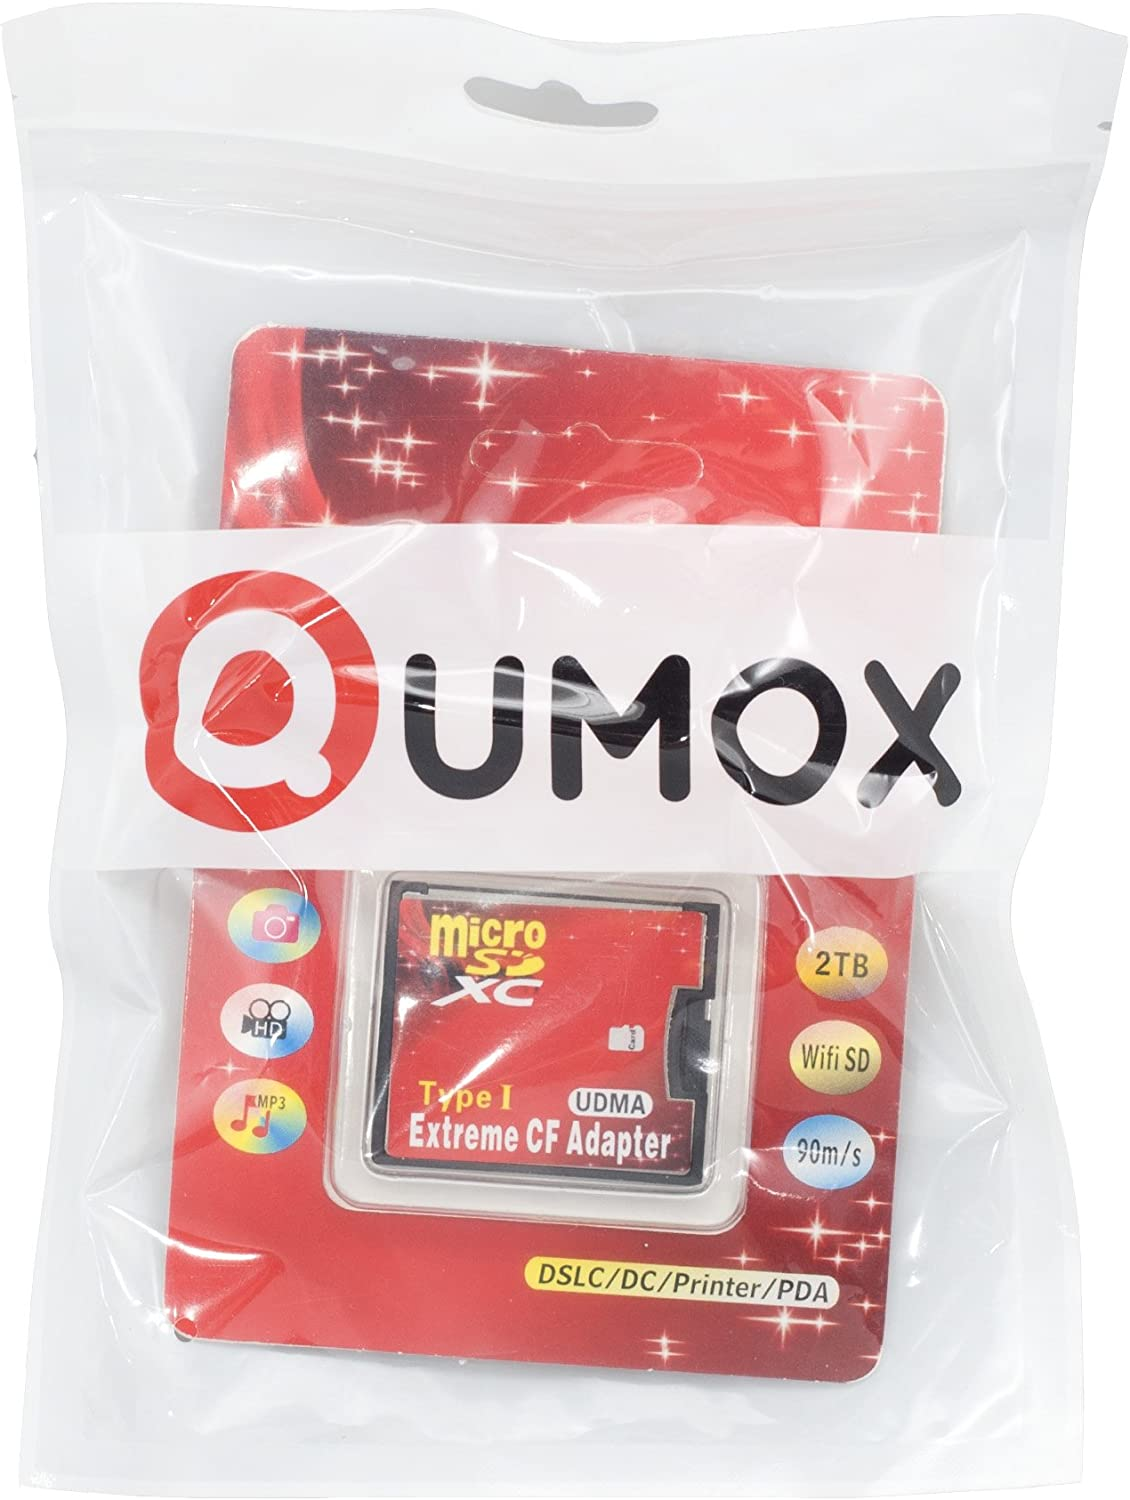 QUMOX microSD to CF Compact Flash Memory Card Adapter Reader Type 1 WiFi